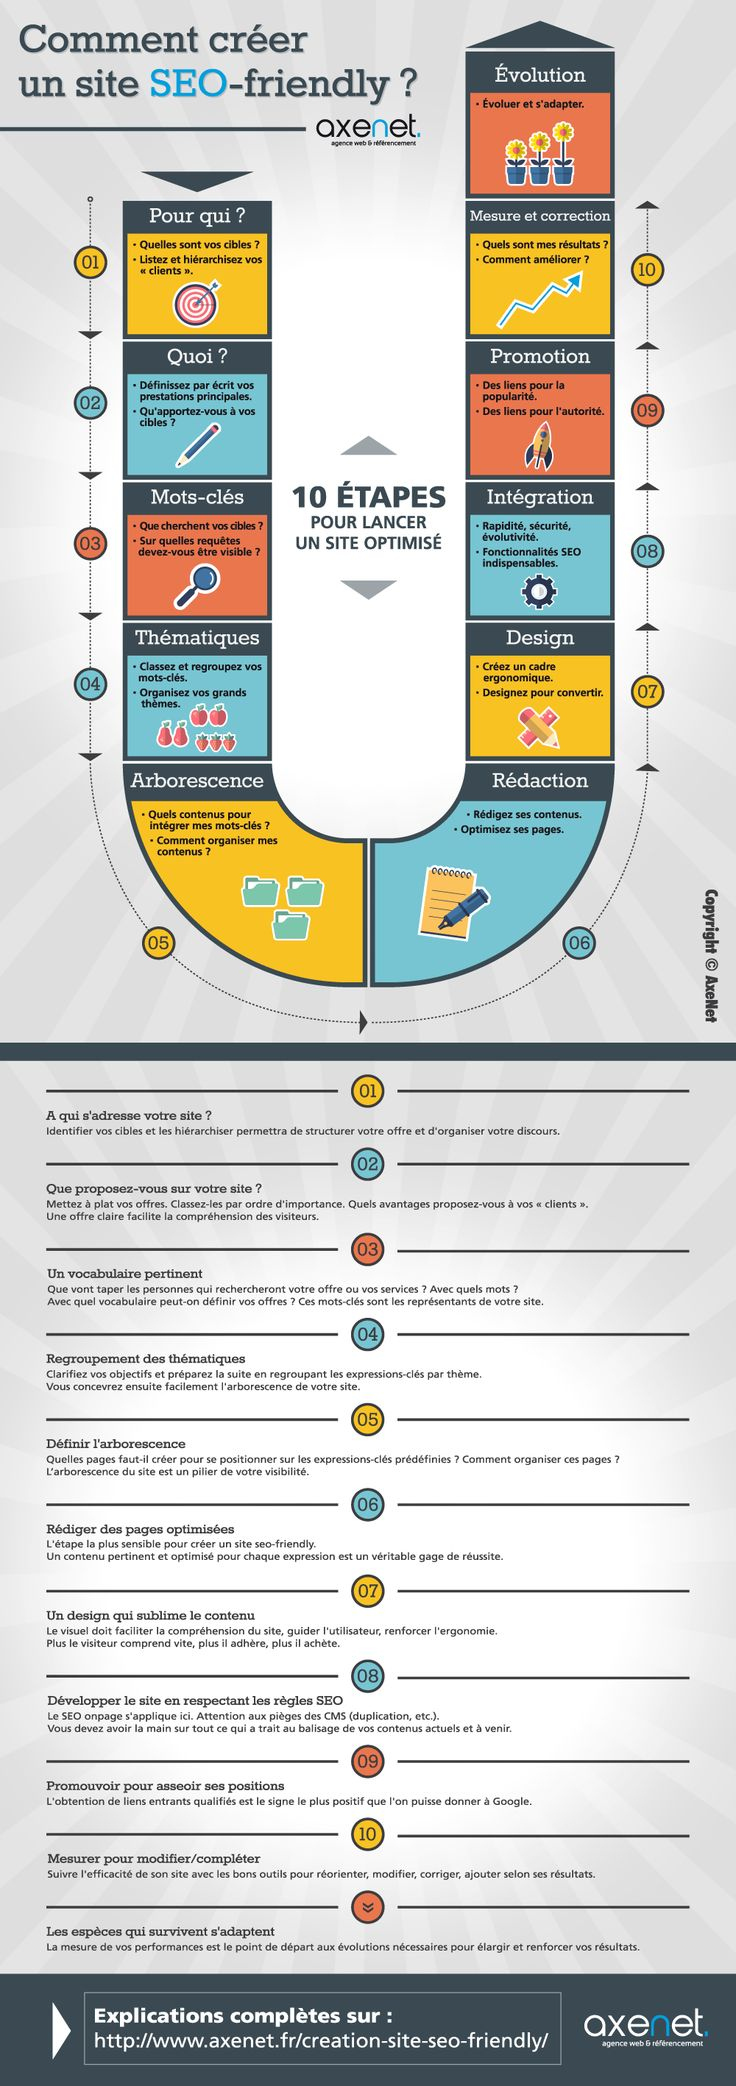 infographie-creer-un-site-seo-friendly